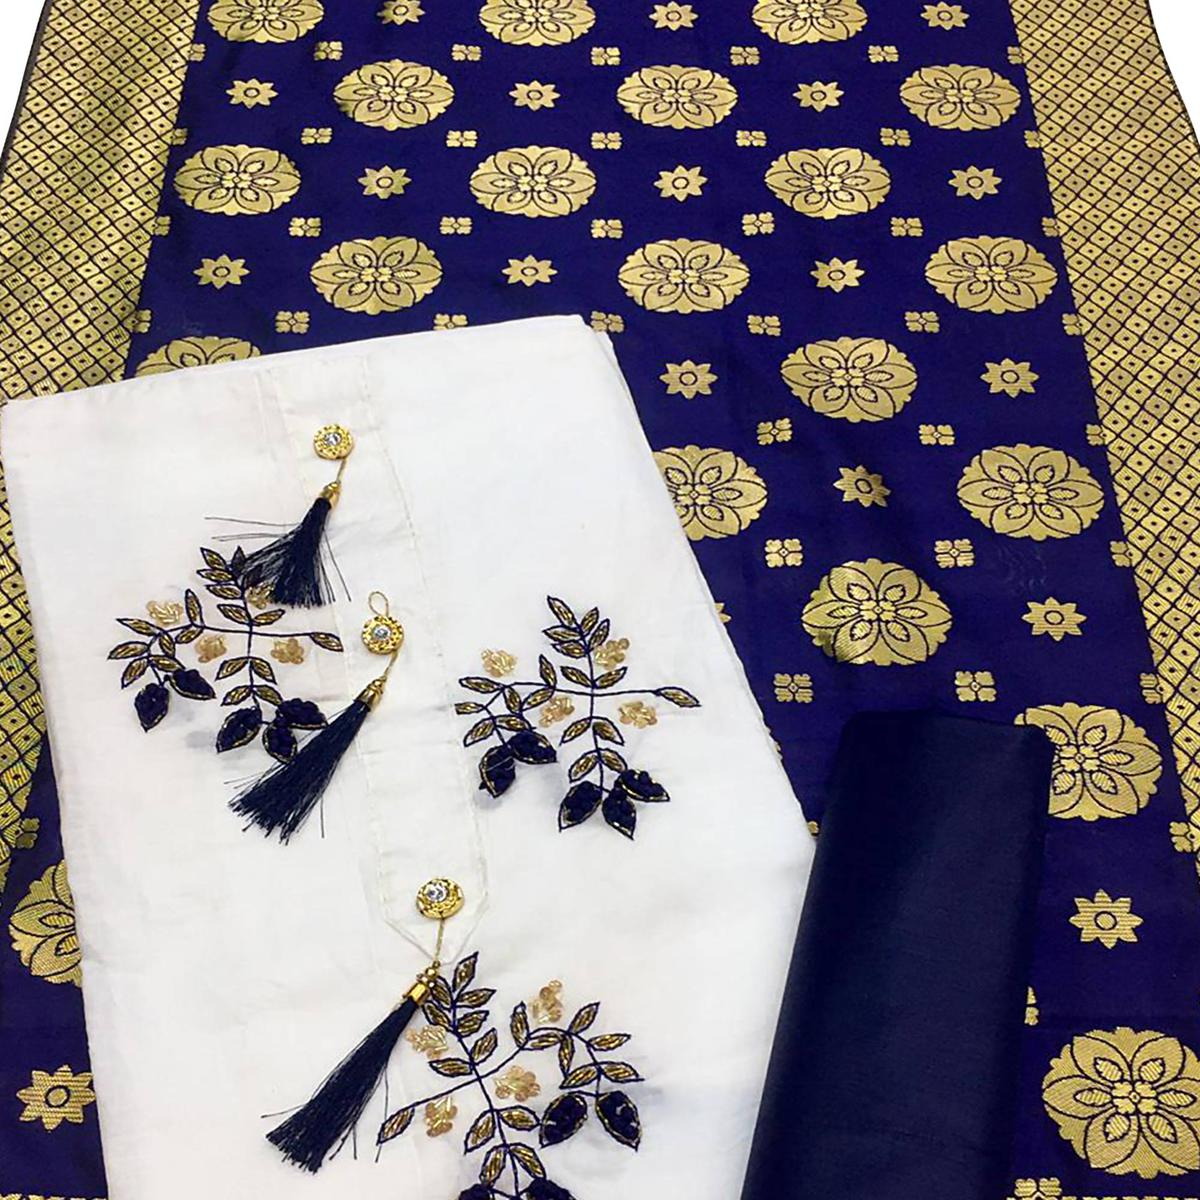 Classy White-Blue Colored Casual Wear Embroidered Cotton Dress Material With Banarasi Silk Dupatta